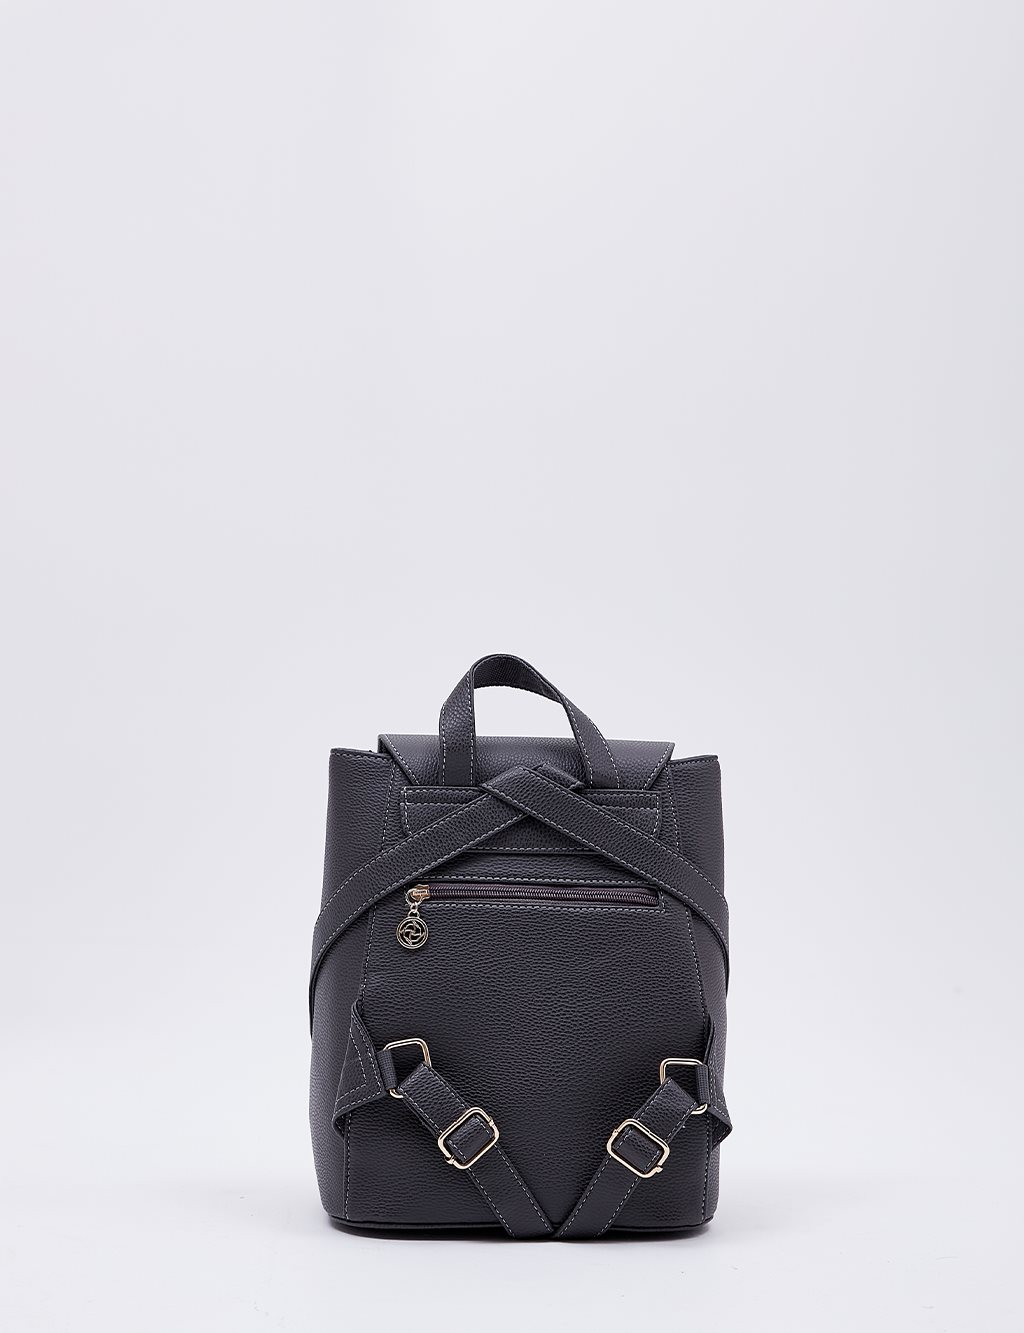 Backpack With Zipper B20 CNT01 Grey